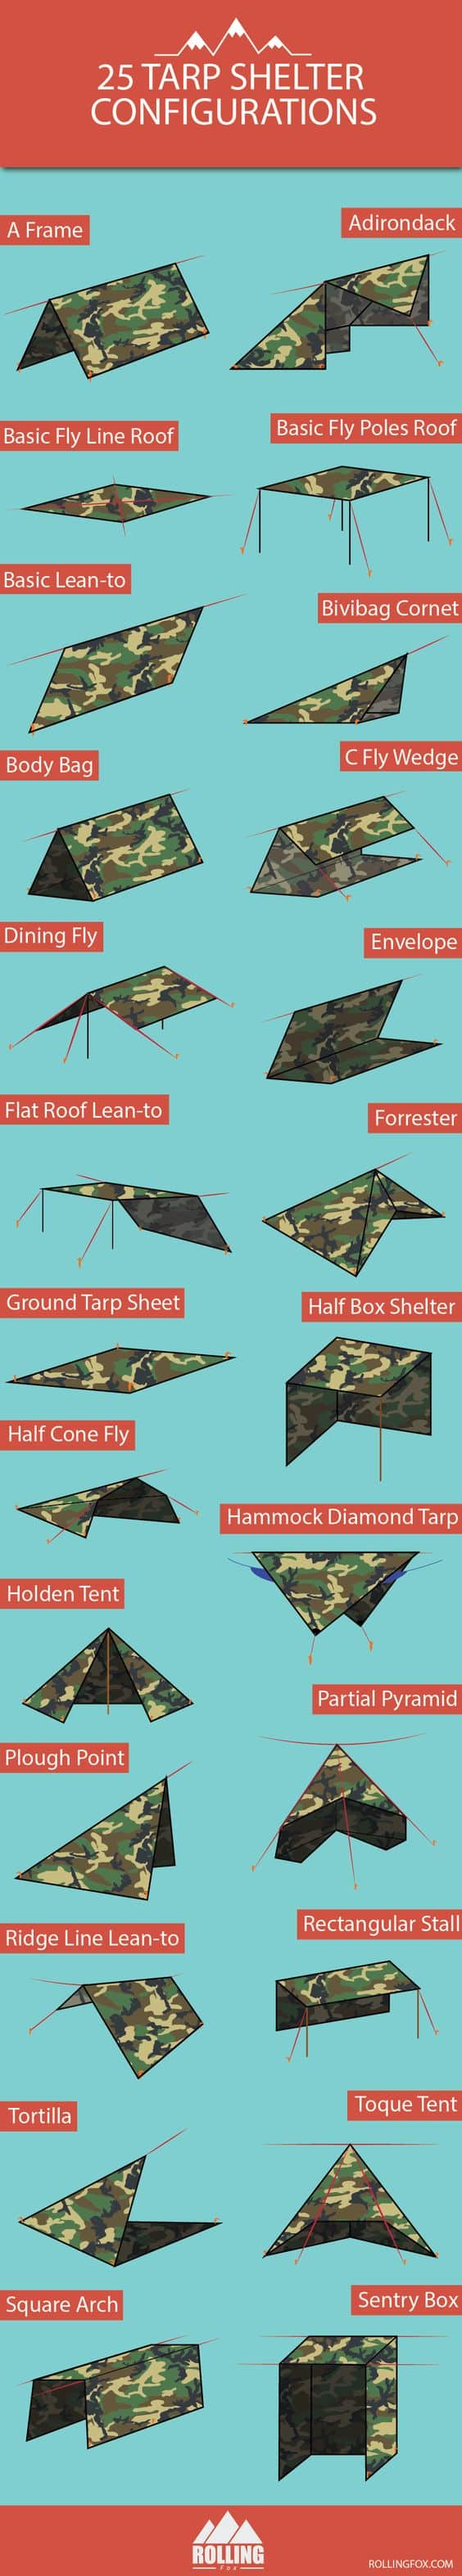 building a temporary survival shelter